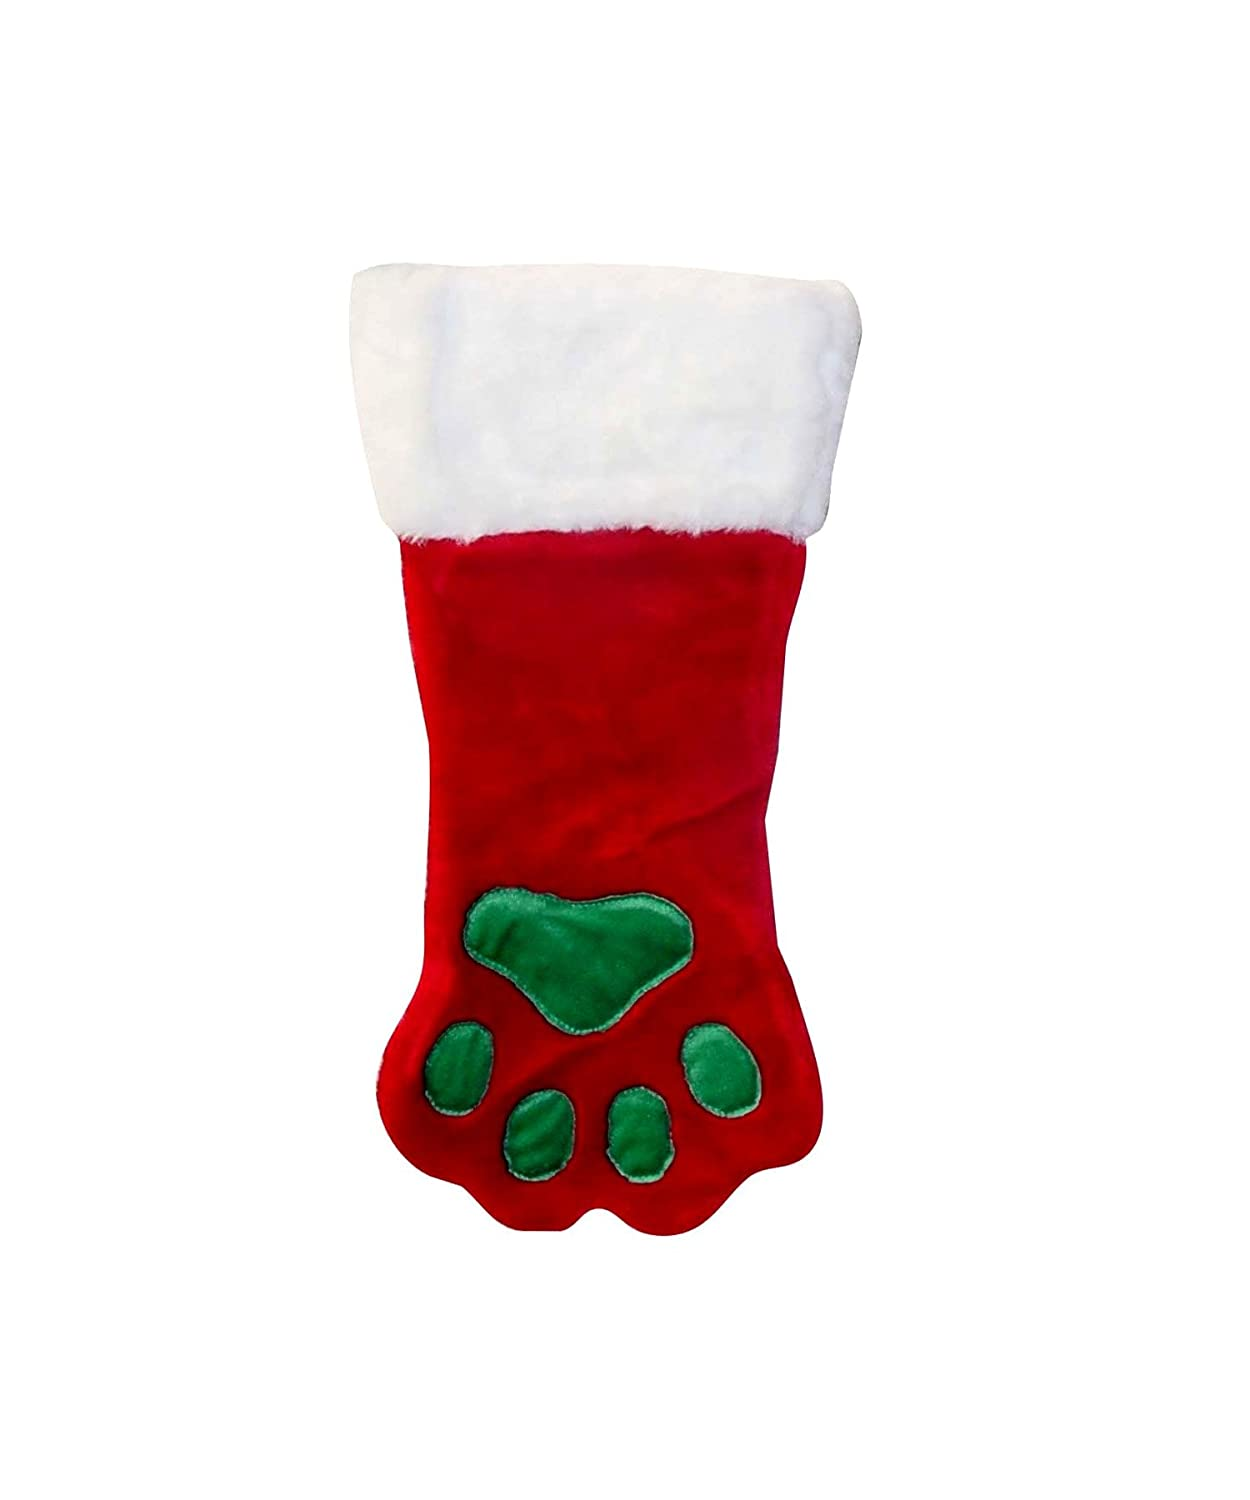 Outward Hound Christmas Paw Dog Stocking Holiday and Christmas Accessories For Dogs, Red Large 18630016